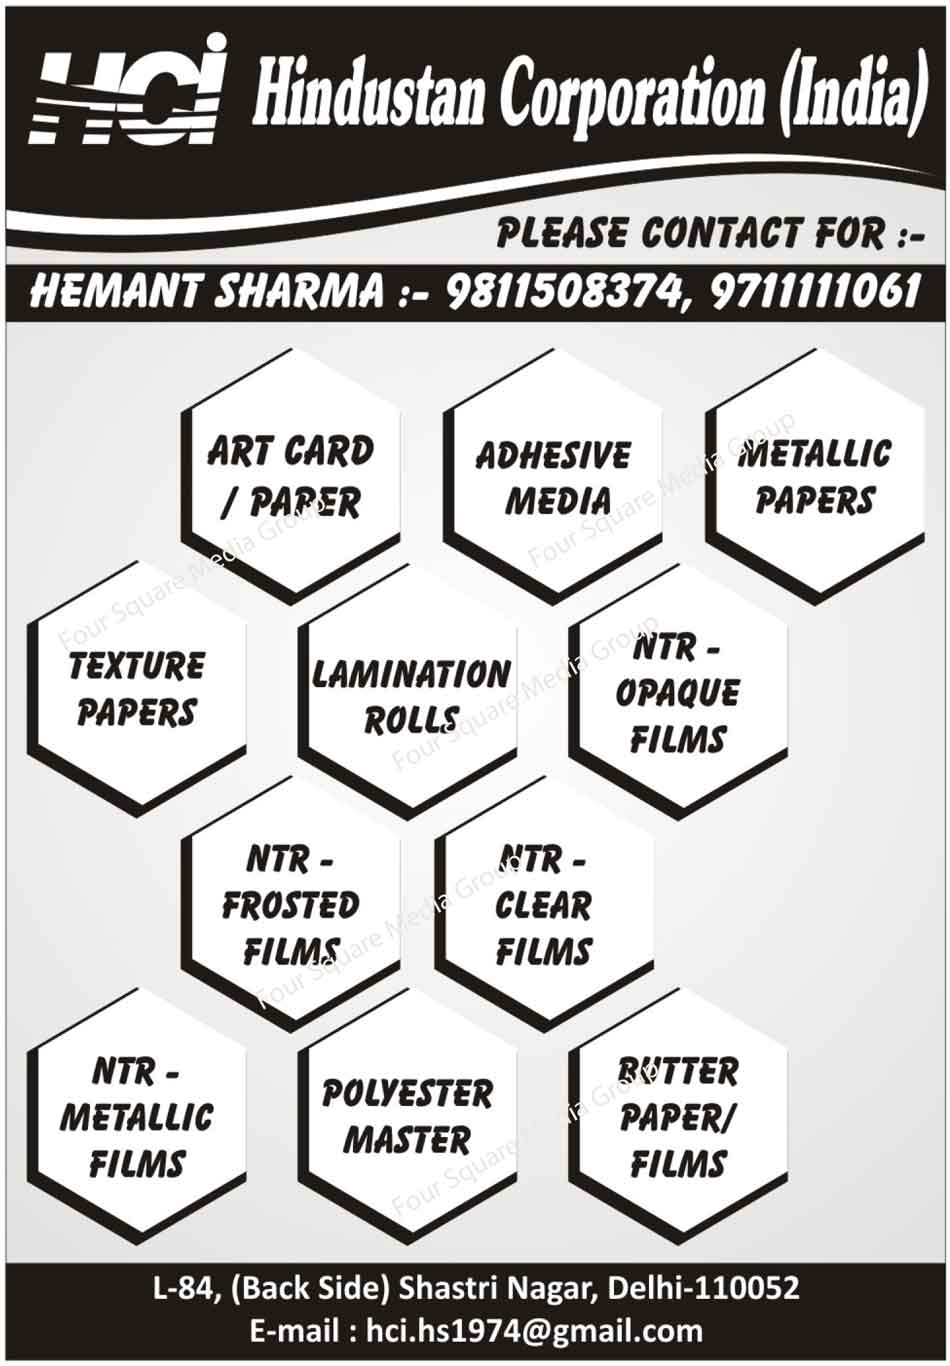 Art Card, Art Paper, Butter Paper, Butter Film, Polyester Master, NTR Metallic Film, NTR Clear Film, NTR Frosted Film, NTE Opaque Film, Lamination Roll, Texture Paper, Metallic Paper, Adhesive Media